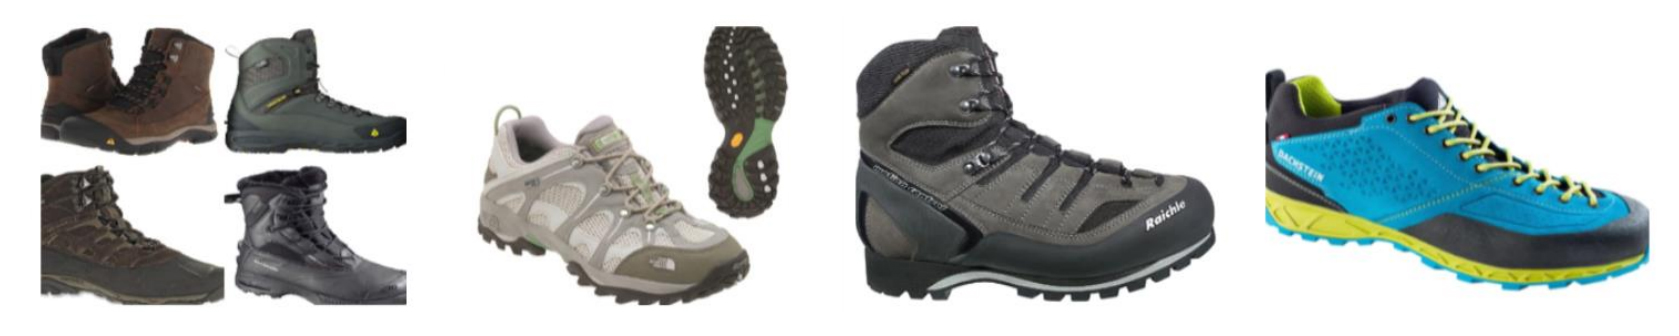 Recommended Shoes for Via Ferrata Activity